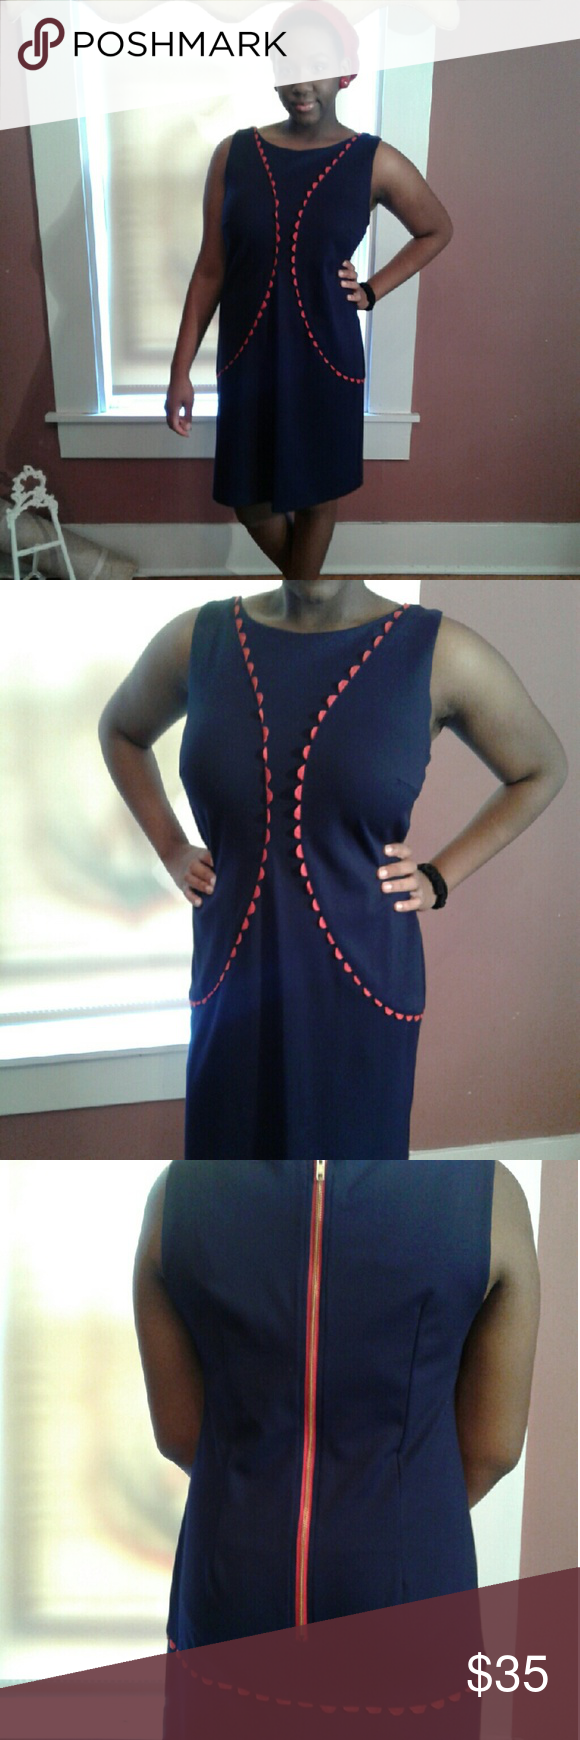 Lesley Evers Sleeveless Shift Dress Lesley Evers Sleeveless Shift Dress in navy  blue & red Rick rack trim on front & back. Dress is in great condition. Sold as is. 60% rayon 33% nylon 7% spandex.  Size  XL ****Modeled by daughter**** Lesley Evers  Dresses